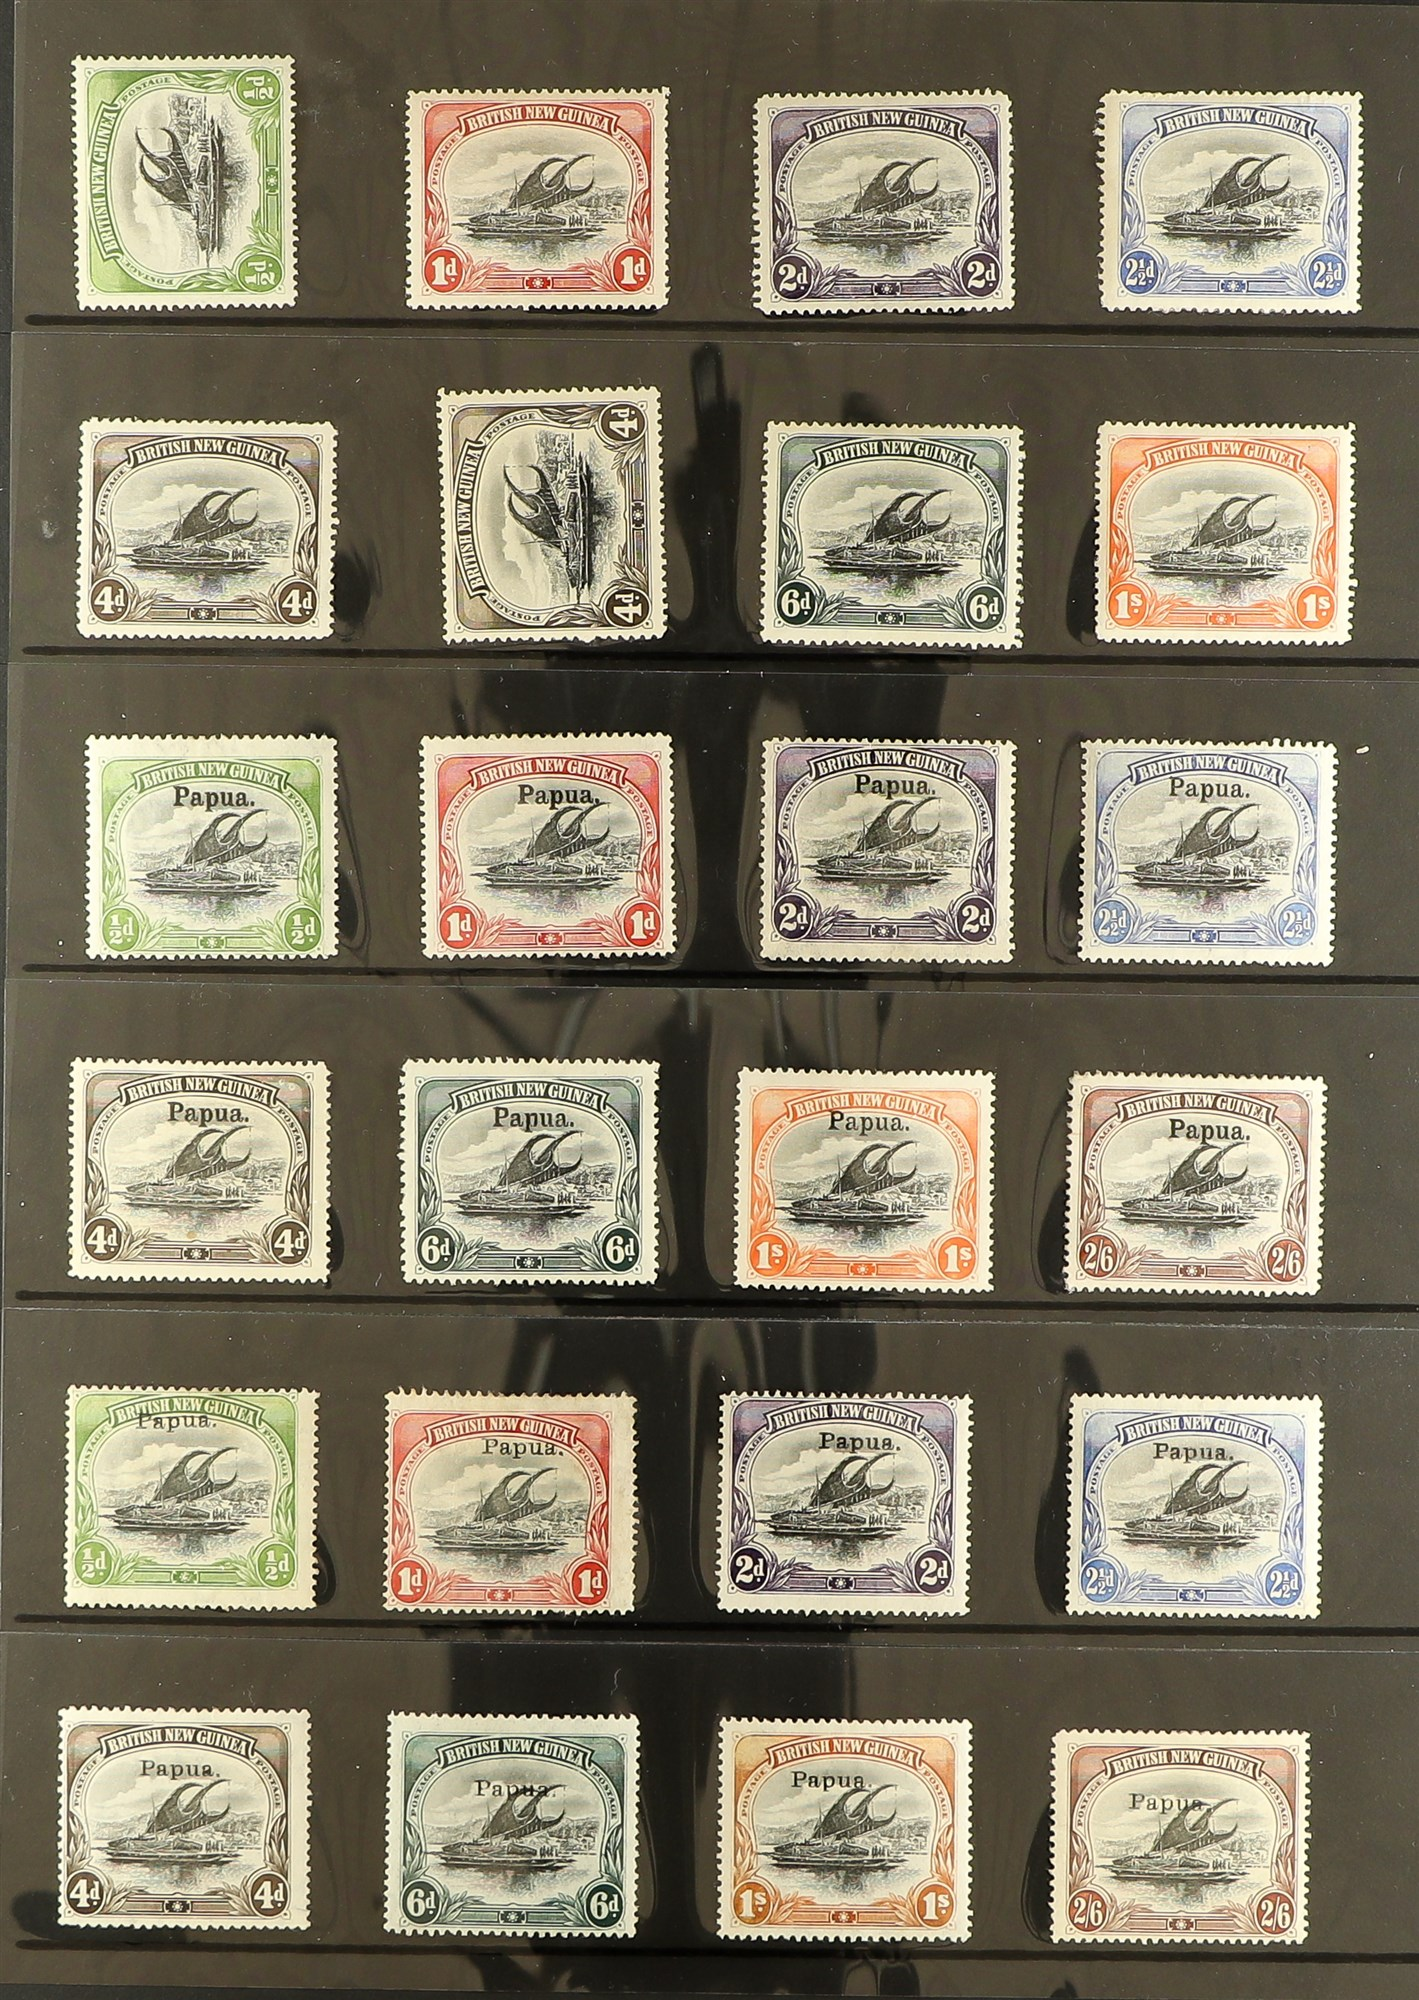 PAPUA 1901-06 MINT COLLECTION incl. 1901-05 British New Guinea set to 1s (most wmk horizontal),